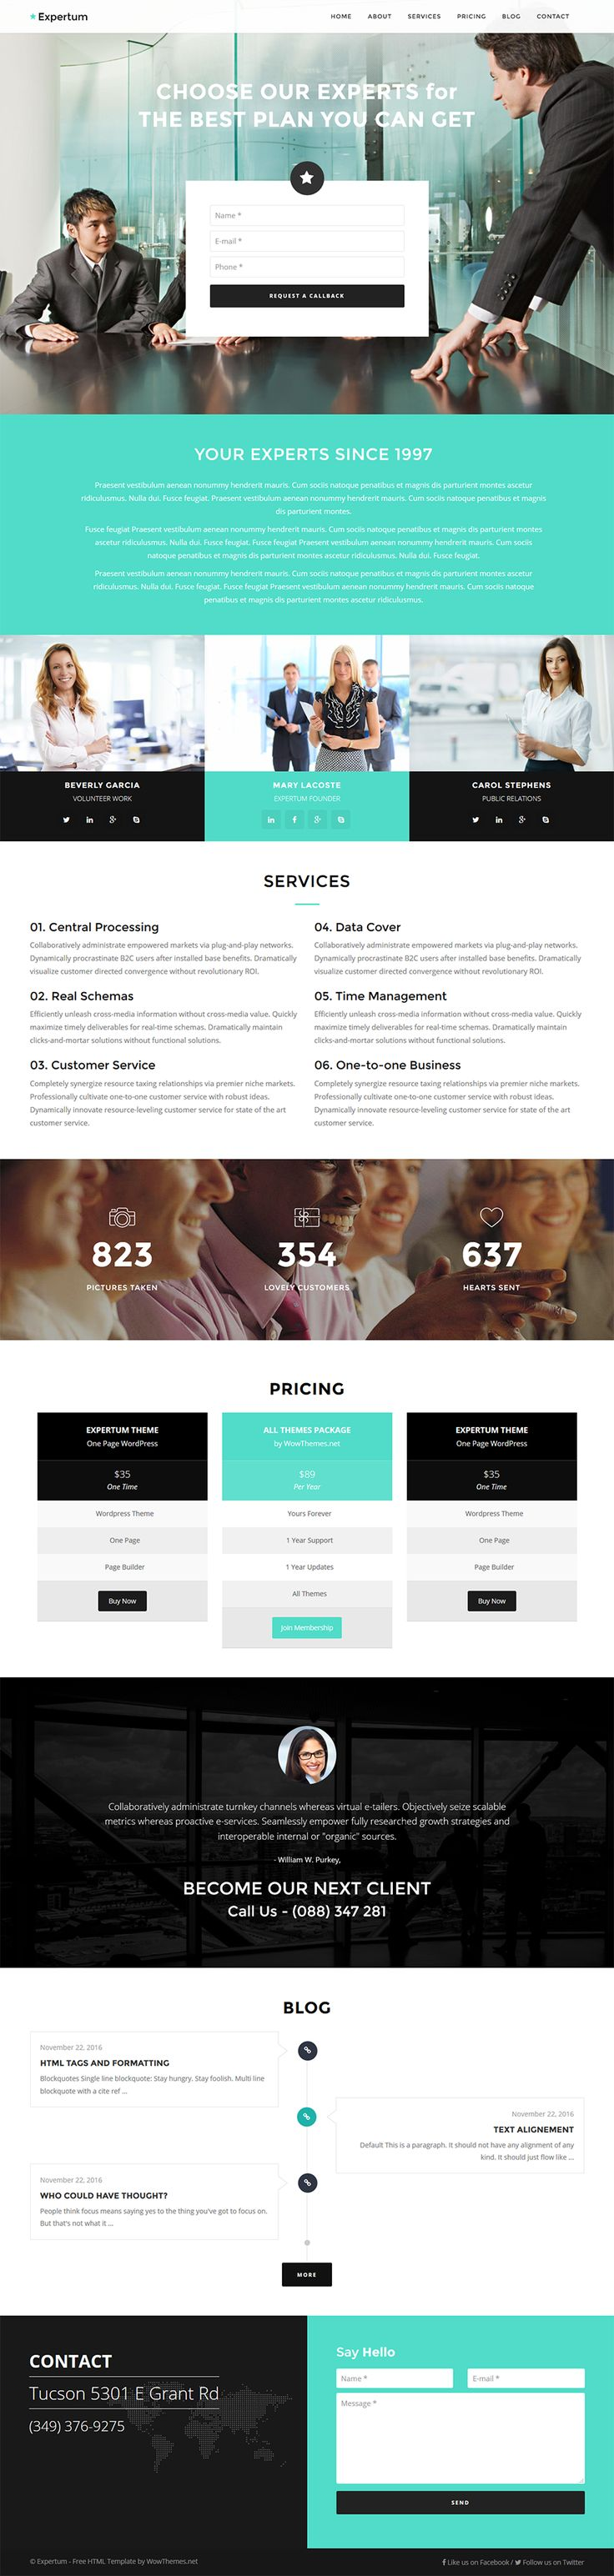 Free Bootstrap HTML Website Template Expertum